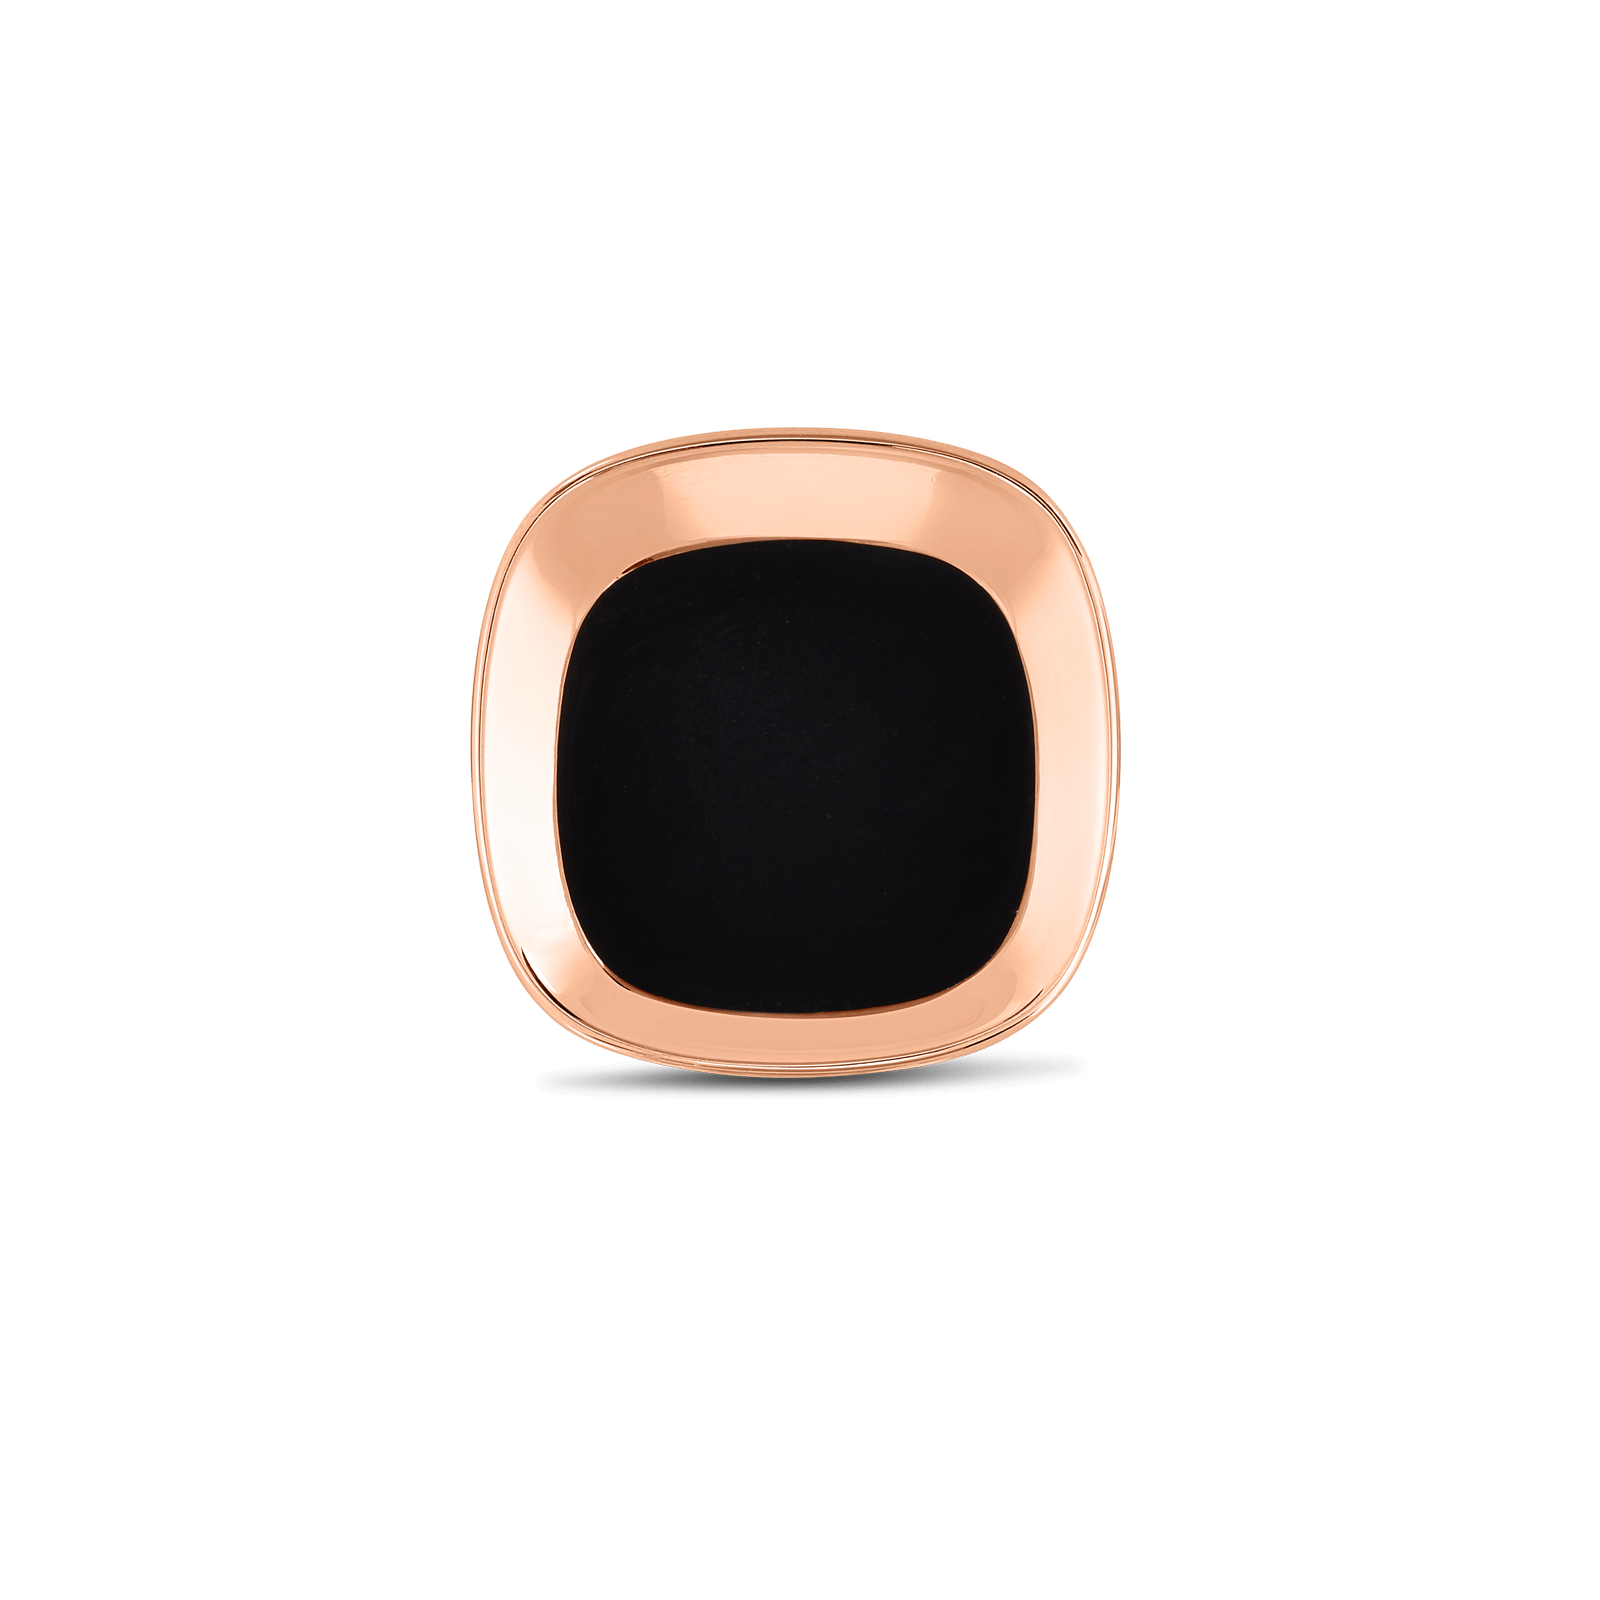 Roberto-Coin-18k-rose-gold-Small Ring with Black Jade-8882208AX65B